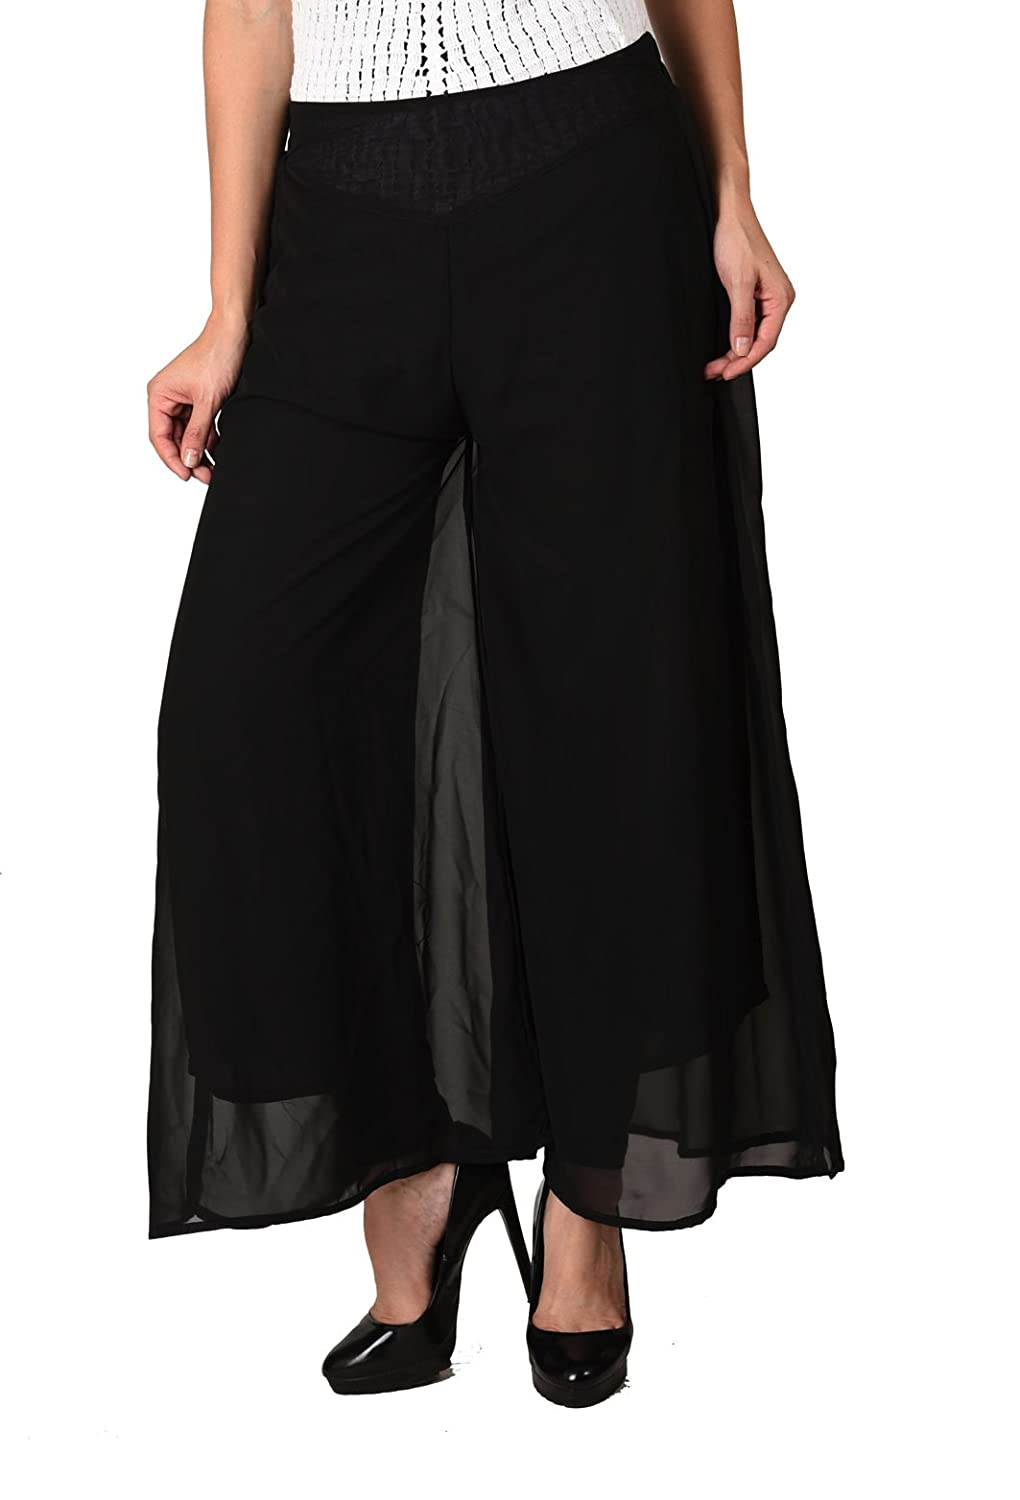 Deals on Women Stylish Solid Black Georgette Plazzo